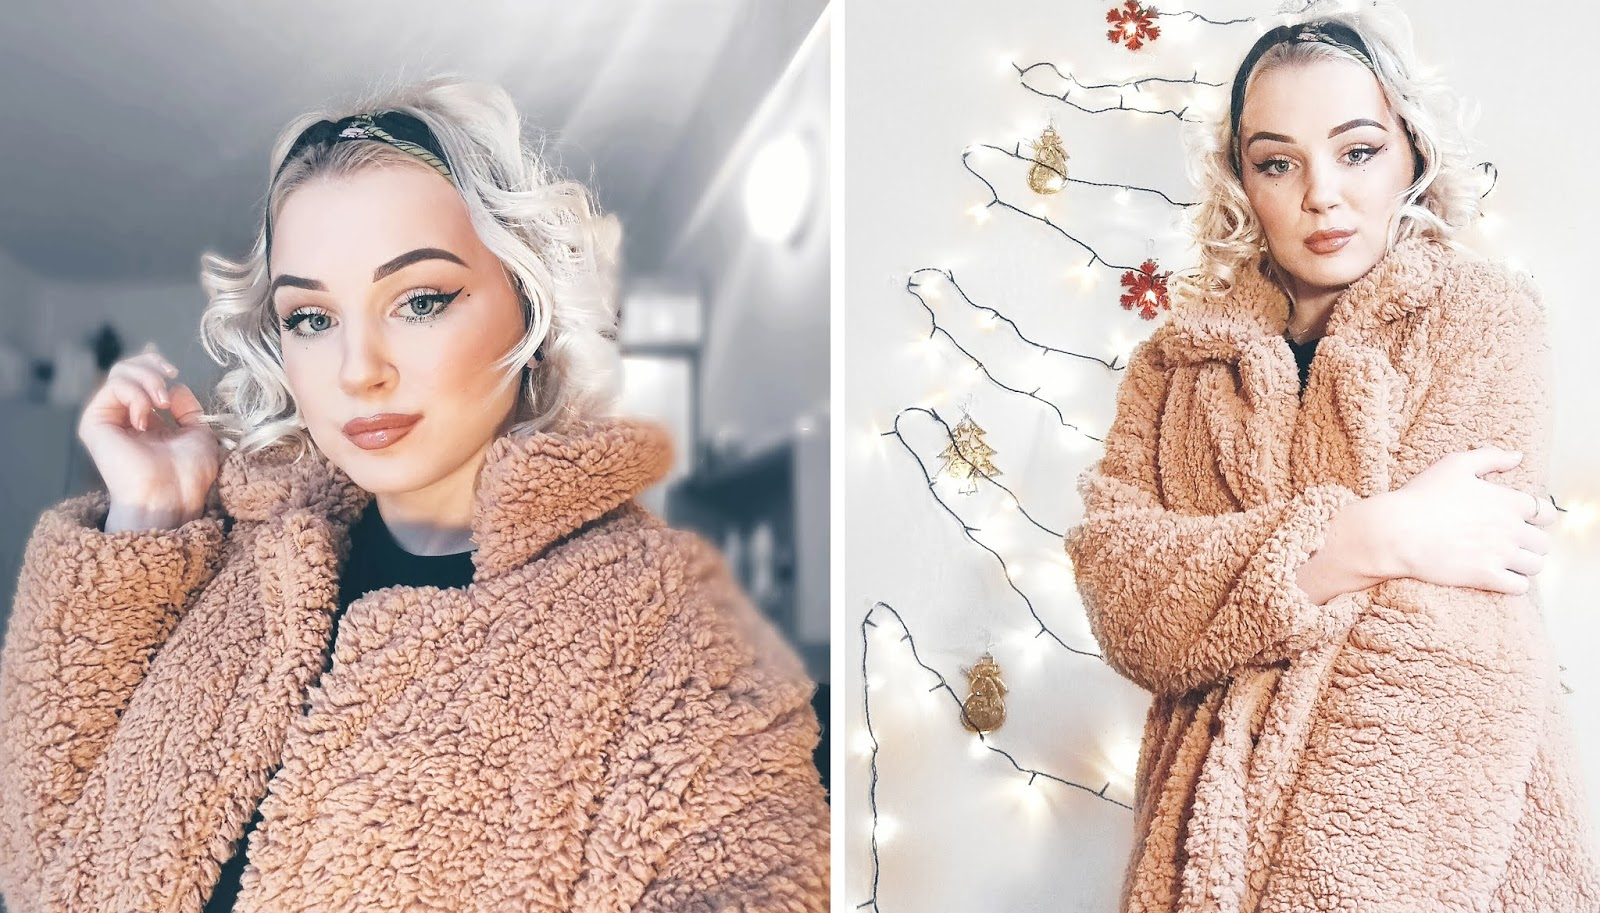 OOTD: TEDDY BEAR COAT